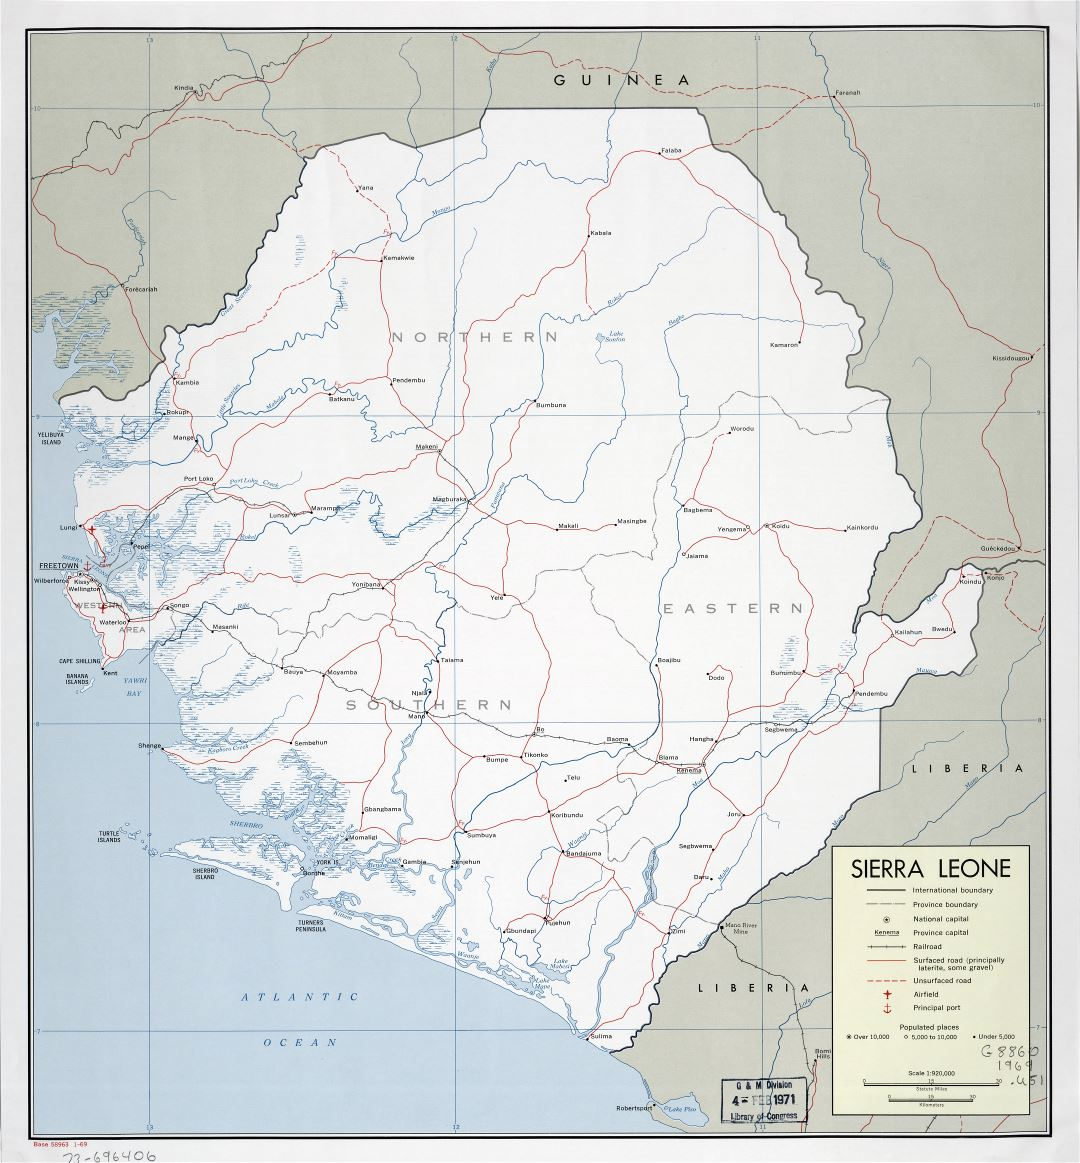 Large scale detailed political and administrative map of Sierra Leone with roads, railroads, cities, ports and airports - 1969